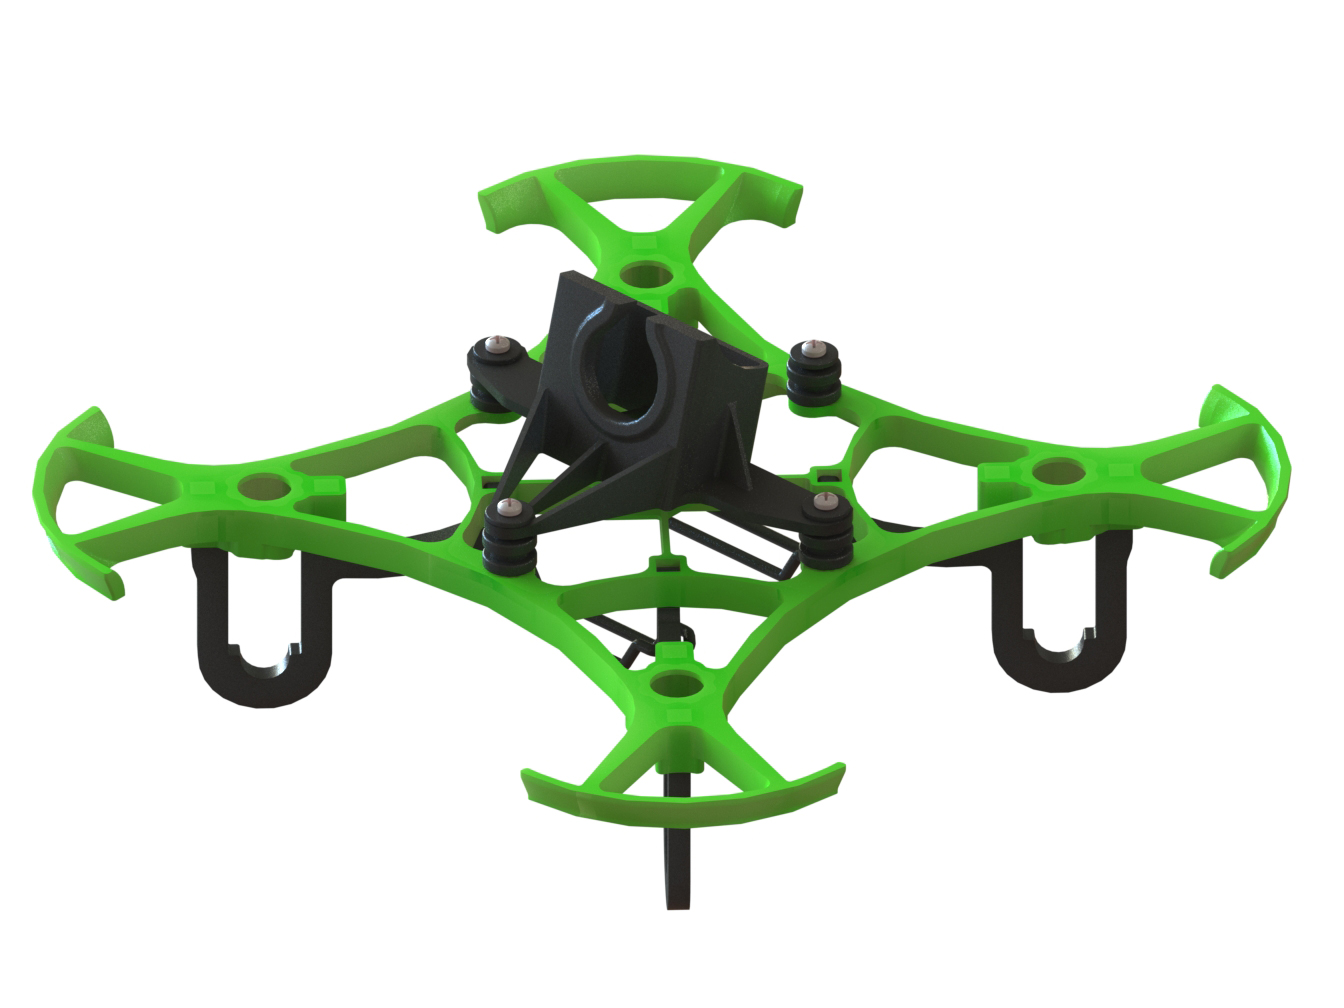 LX2411-2 - Pika 65 FPV Racer, Green Color